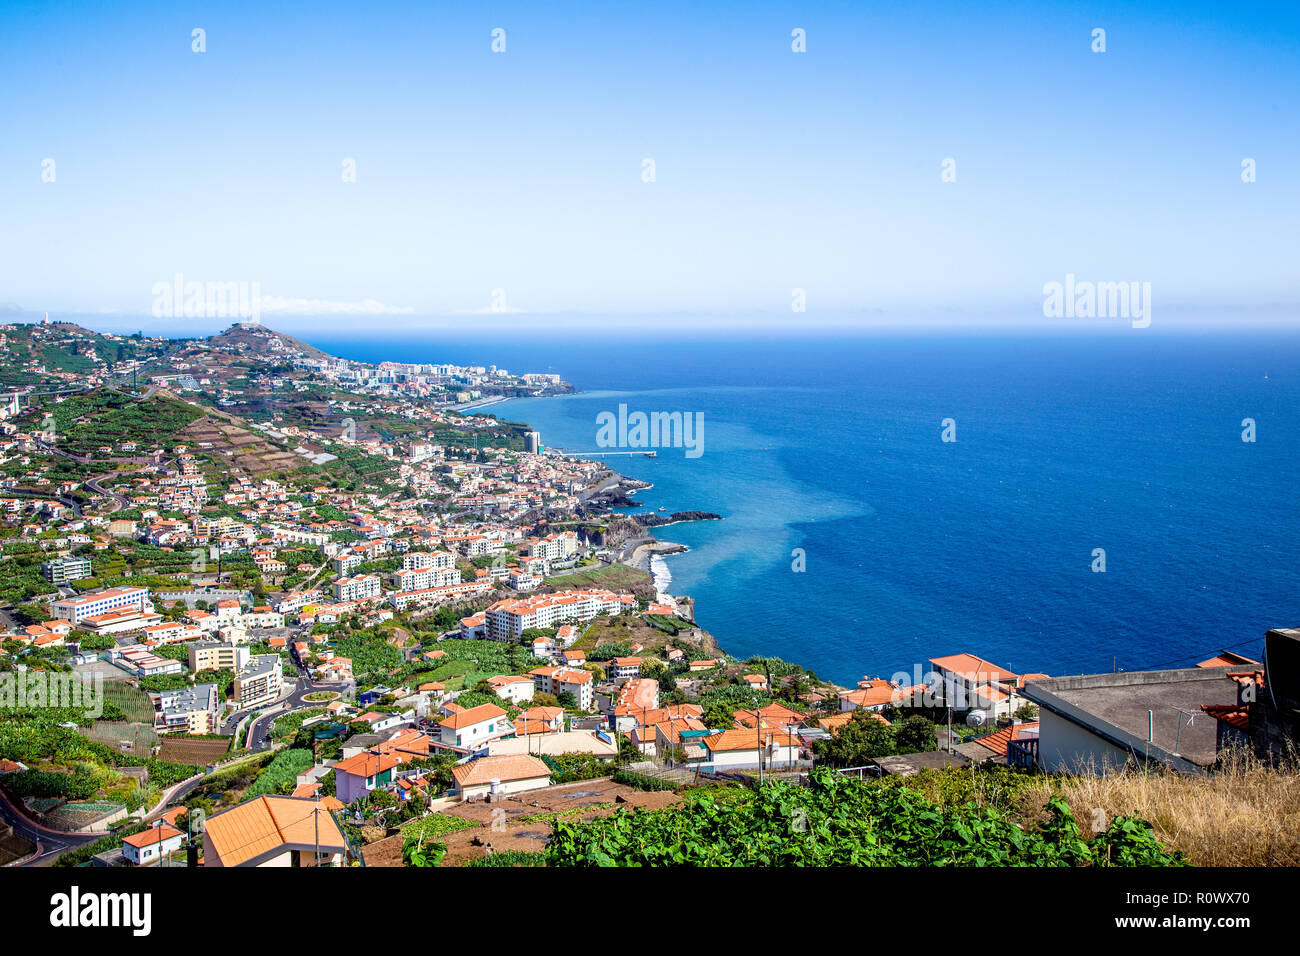 View of the village Câmara de Lobos, Madeira Island - Stock Image